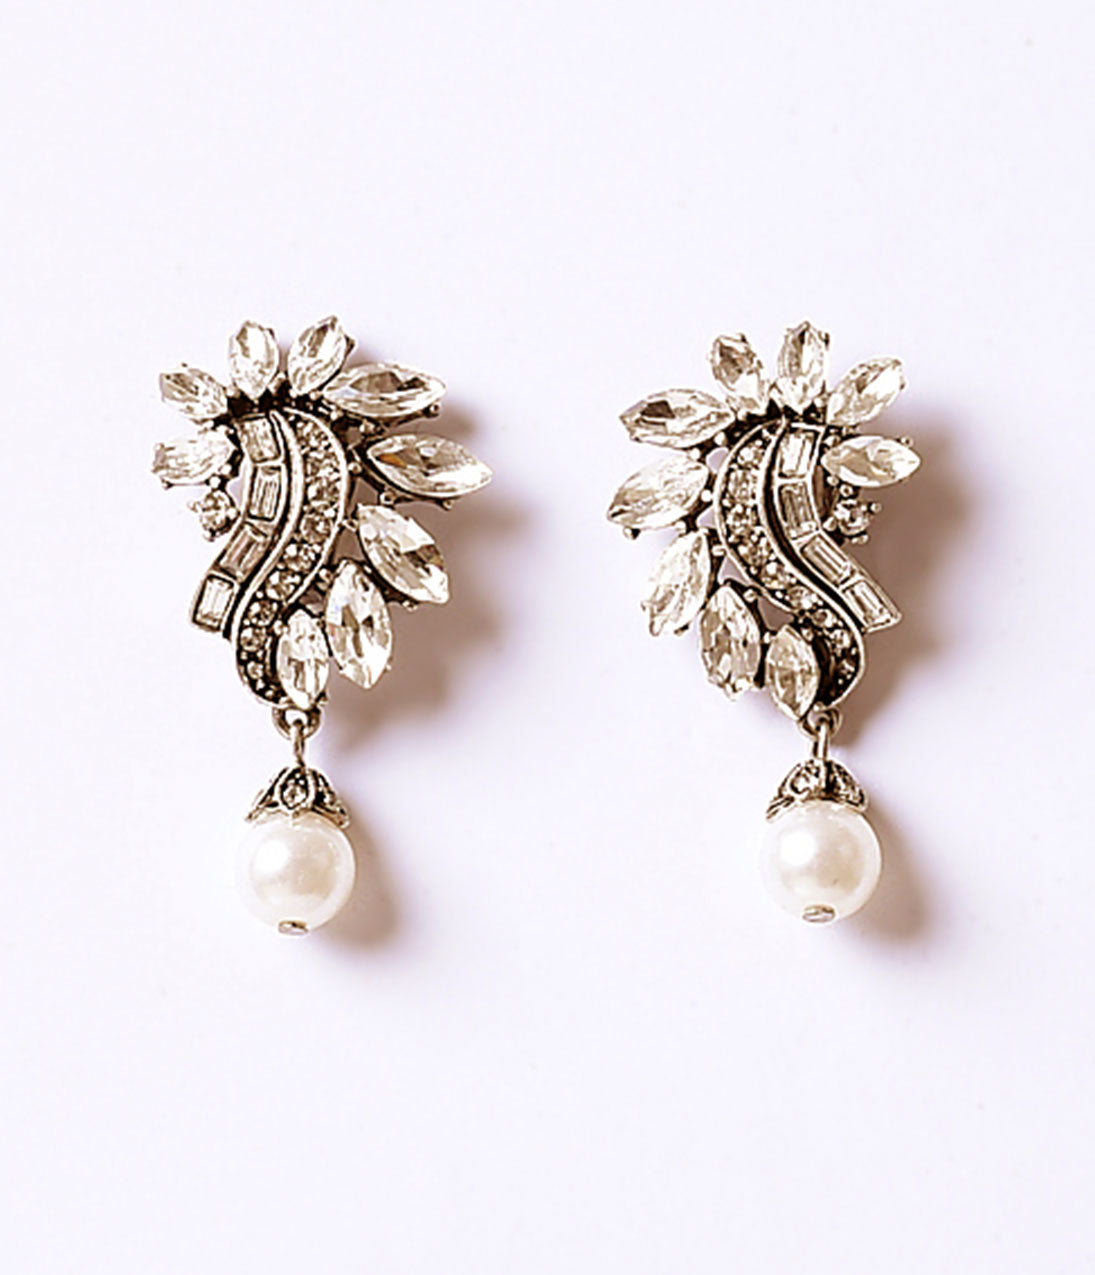 1930s Jewelry | Art Deco Style Jewelry Vintage Style Silver Rhinestone  Ivory Pearl Earrings $22.00 AT vintagedancer.com